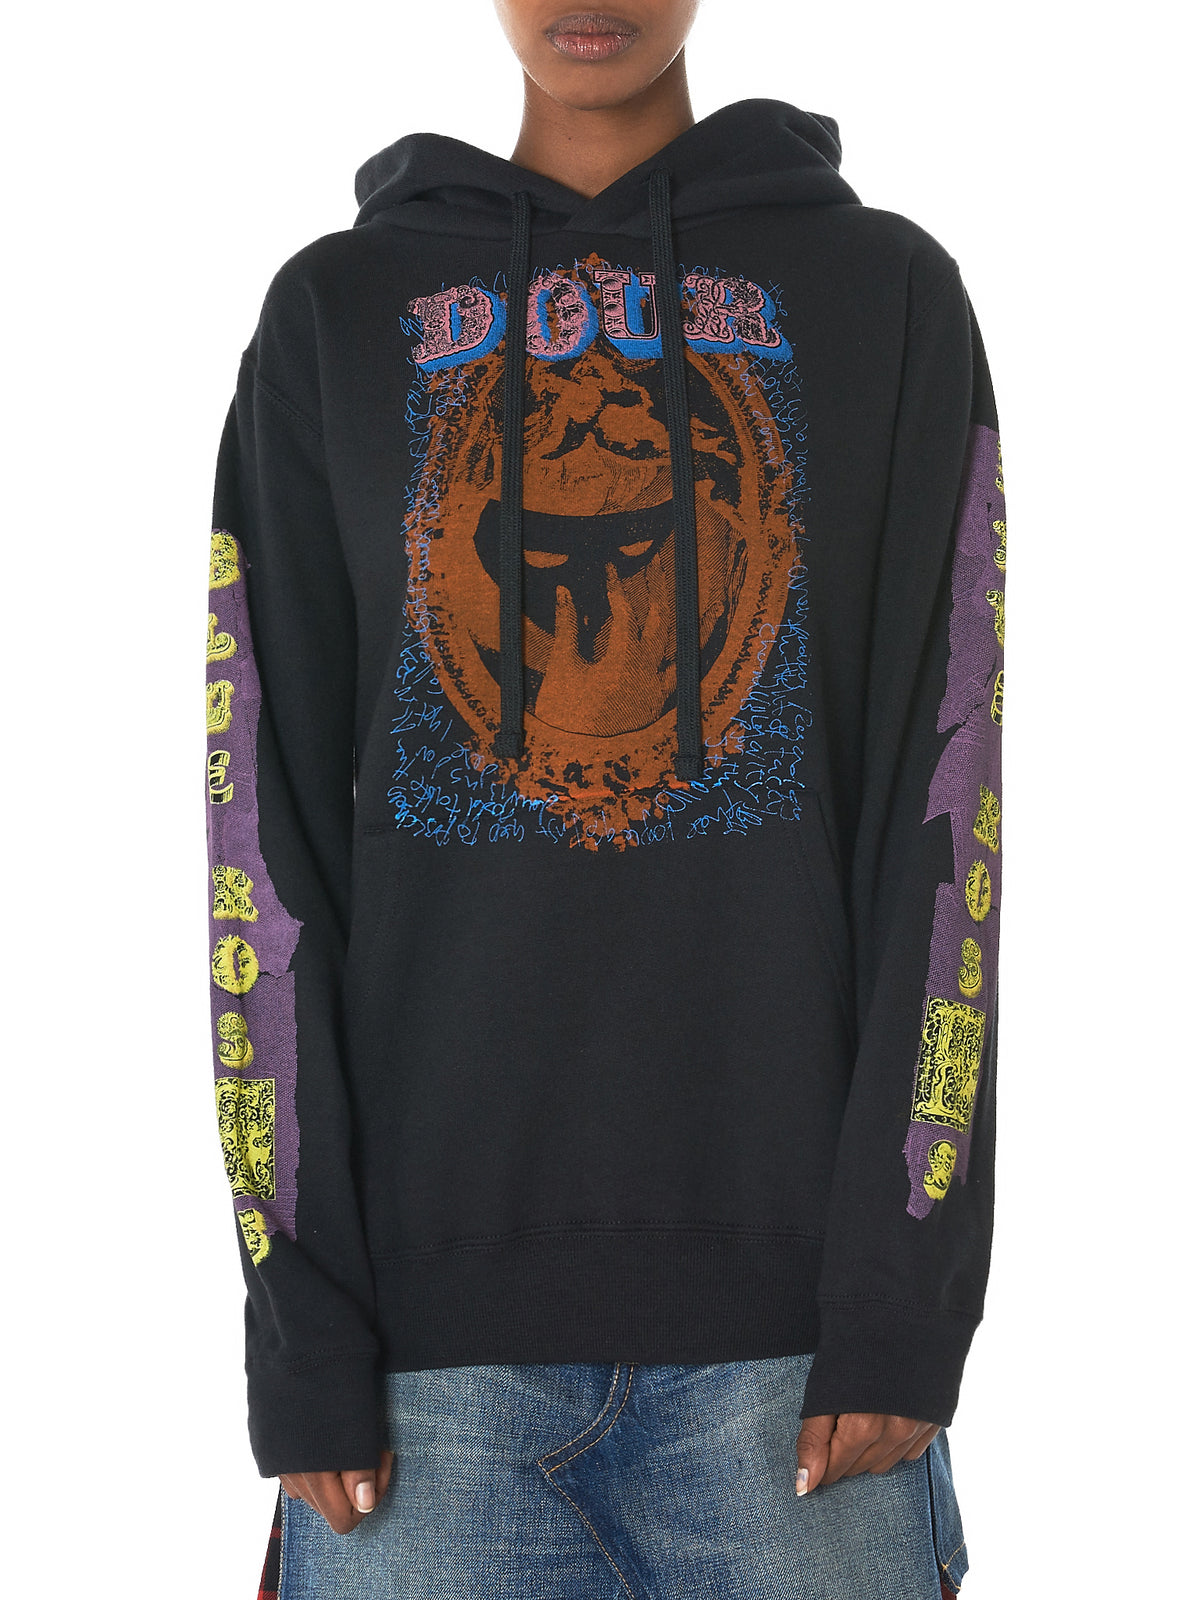 Copy of 'Dour' Hooded Sweater (DOUR-BLACK)